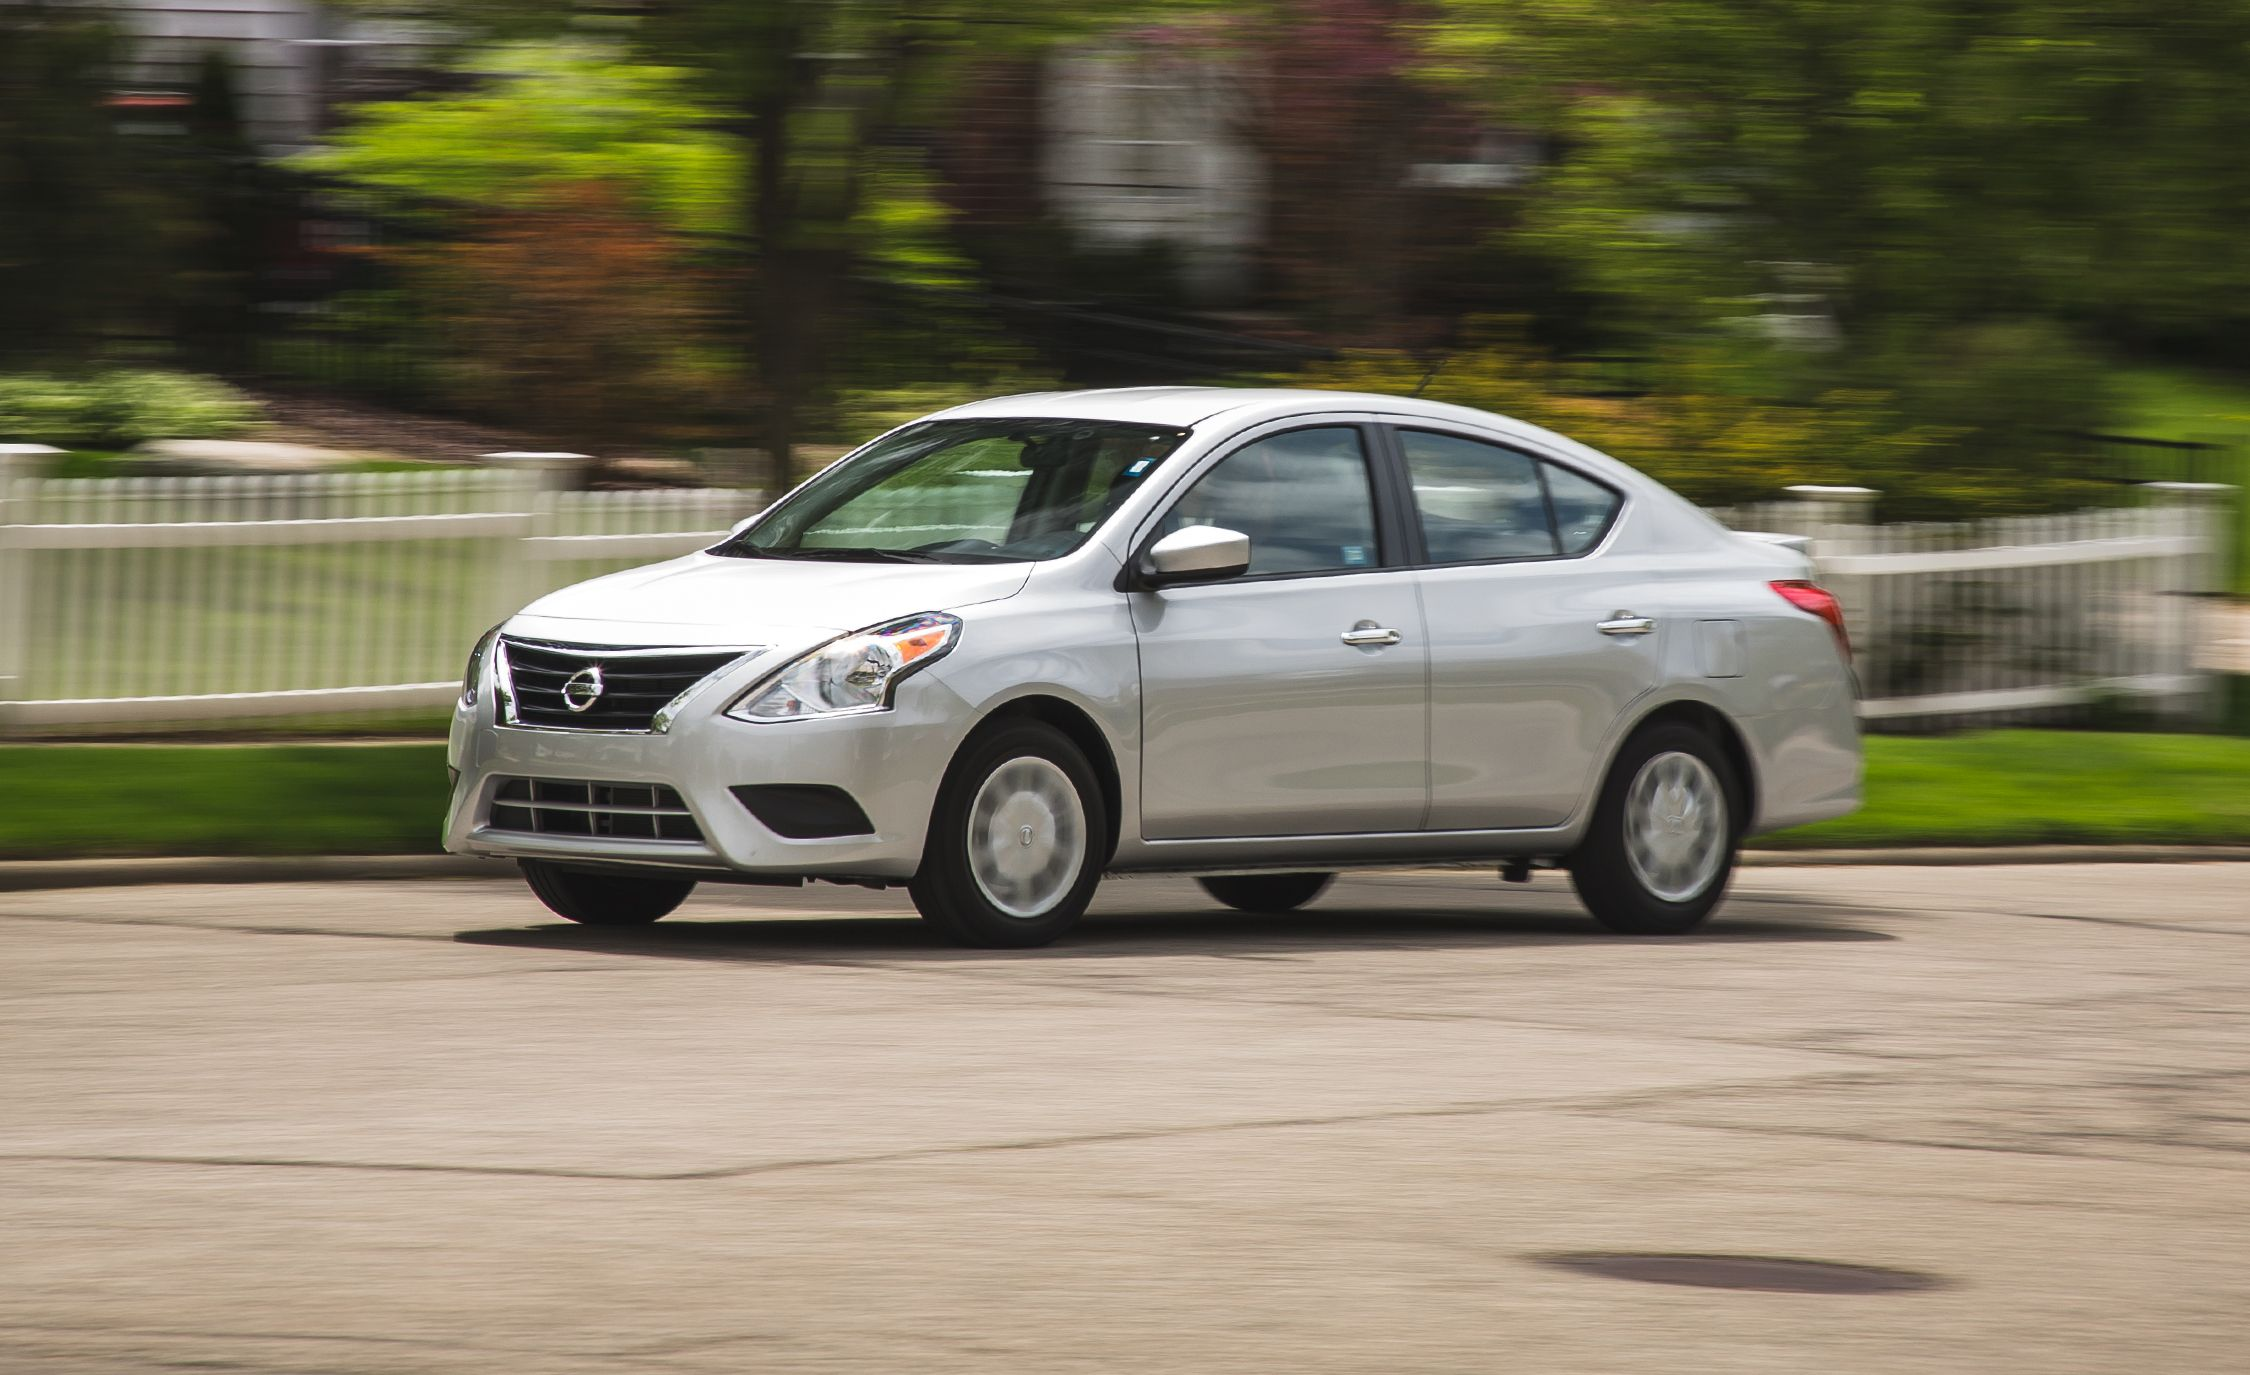 Nissan Versa Reviews | Nissan Versa Price, Photos, And Specs | Car And  Driver